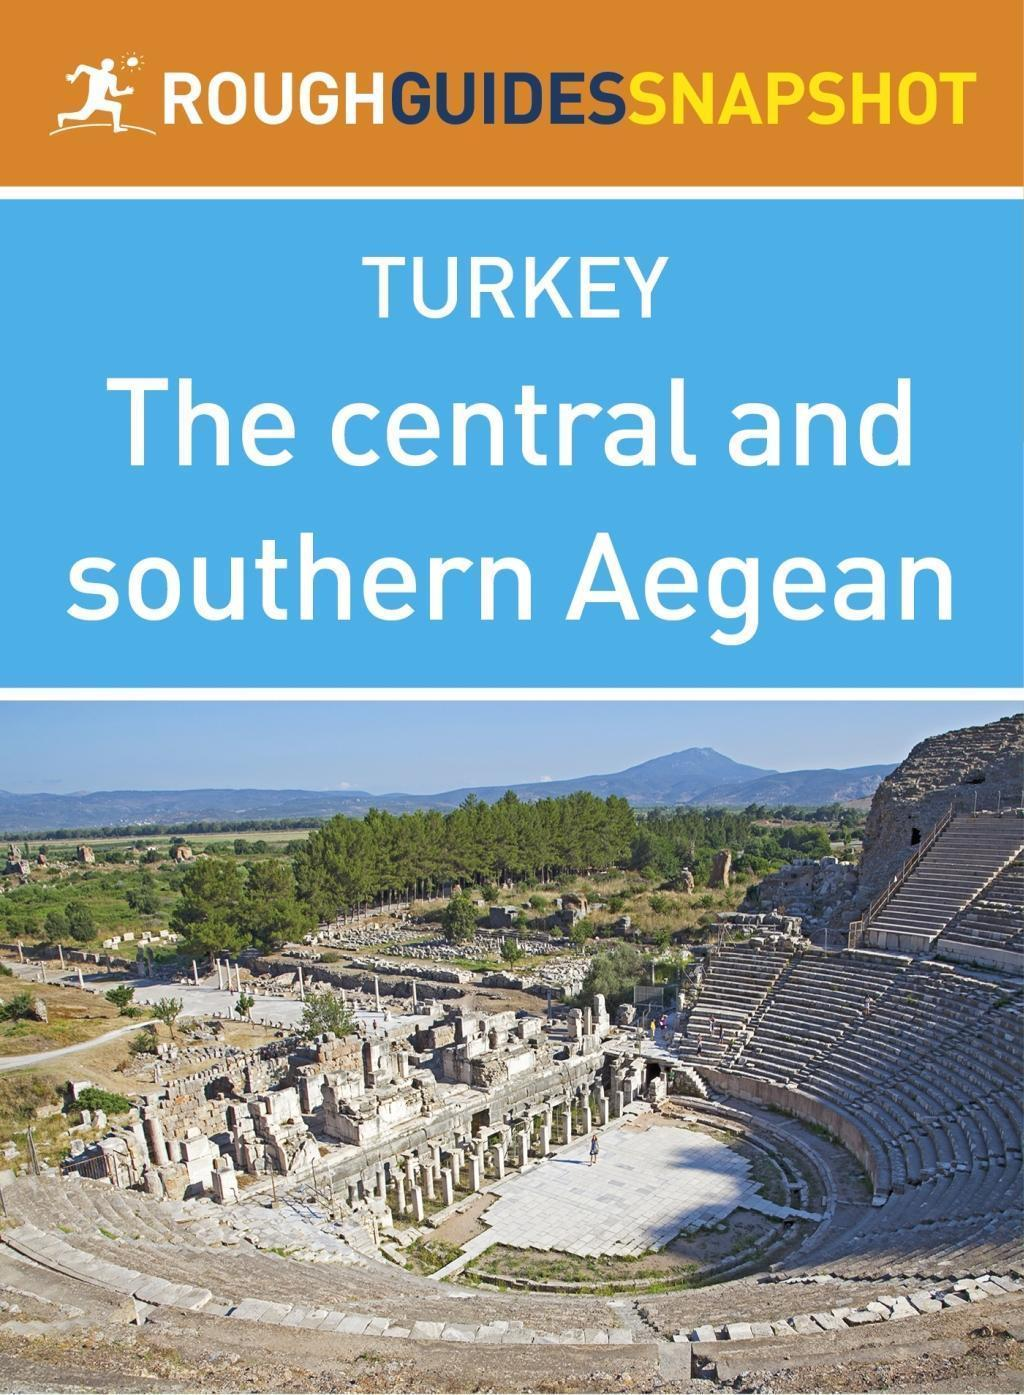 The central and southern Aegean Rough Guides Snapshot Turkey (includes Izmir,The Çesme peninsular, Ancient Ionia and Pamukkale)